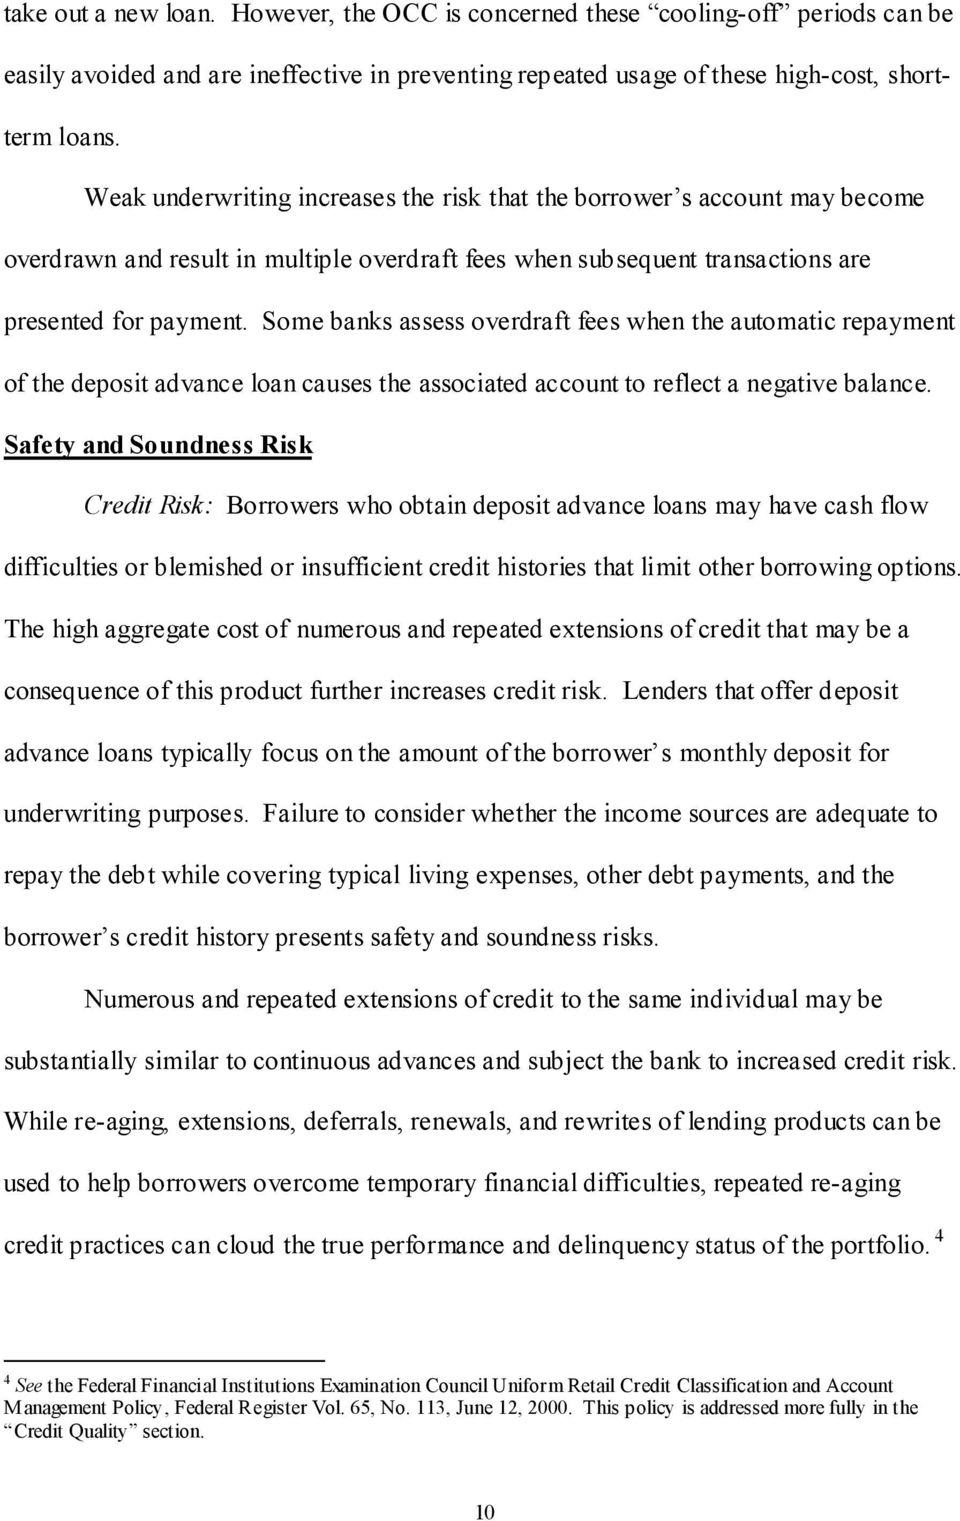 Some banks assess overdraft fees when the automatic repayment of the deposit advance loan causes the associated account to reflect a negative balance.